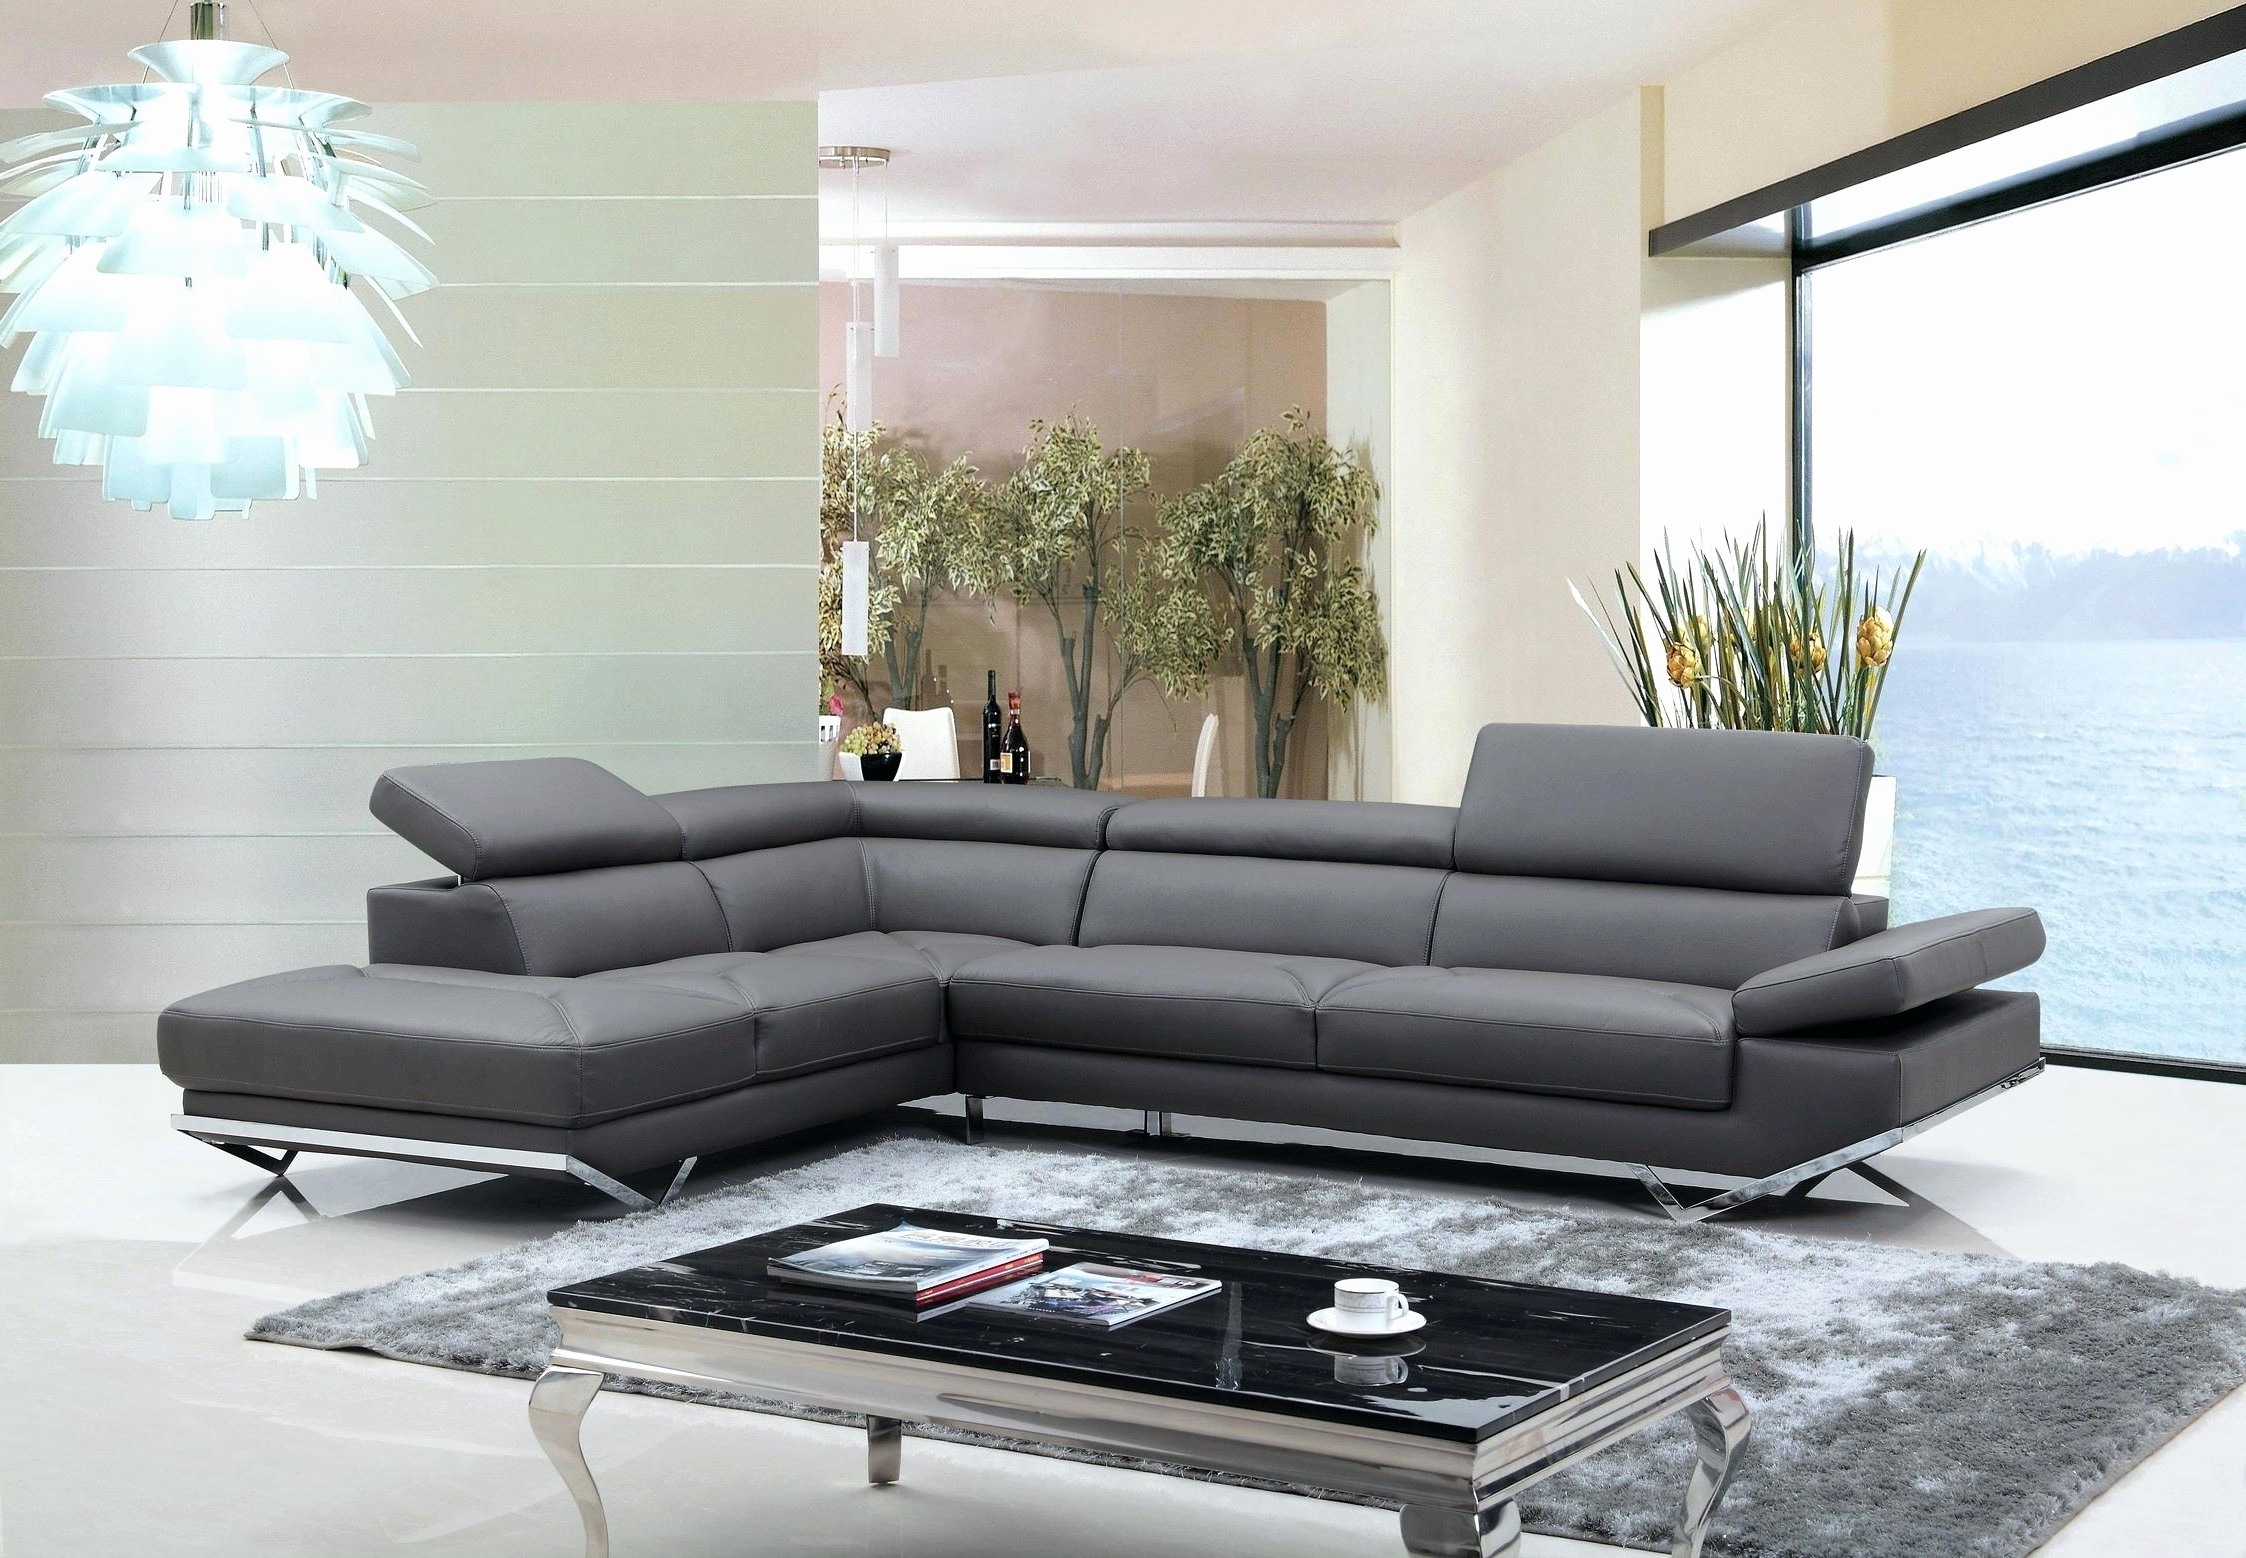 Leons Sectional Sofas In Latest Elegant Convertible Sectional Sofa Bed Graphics – Home Design (View 20 of 20)